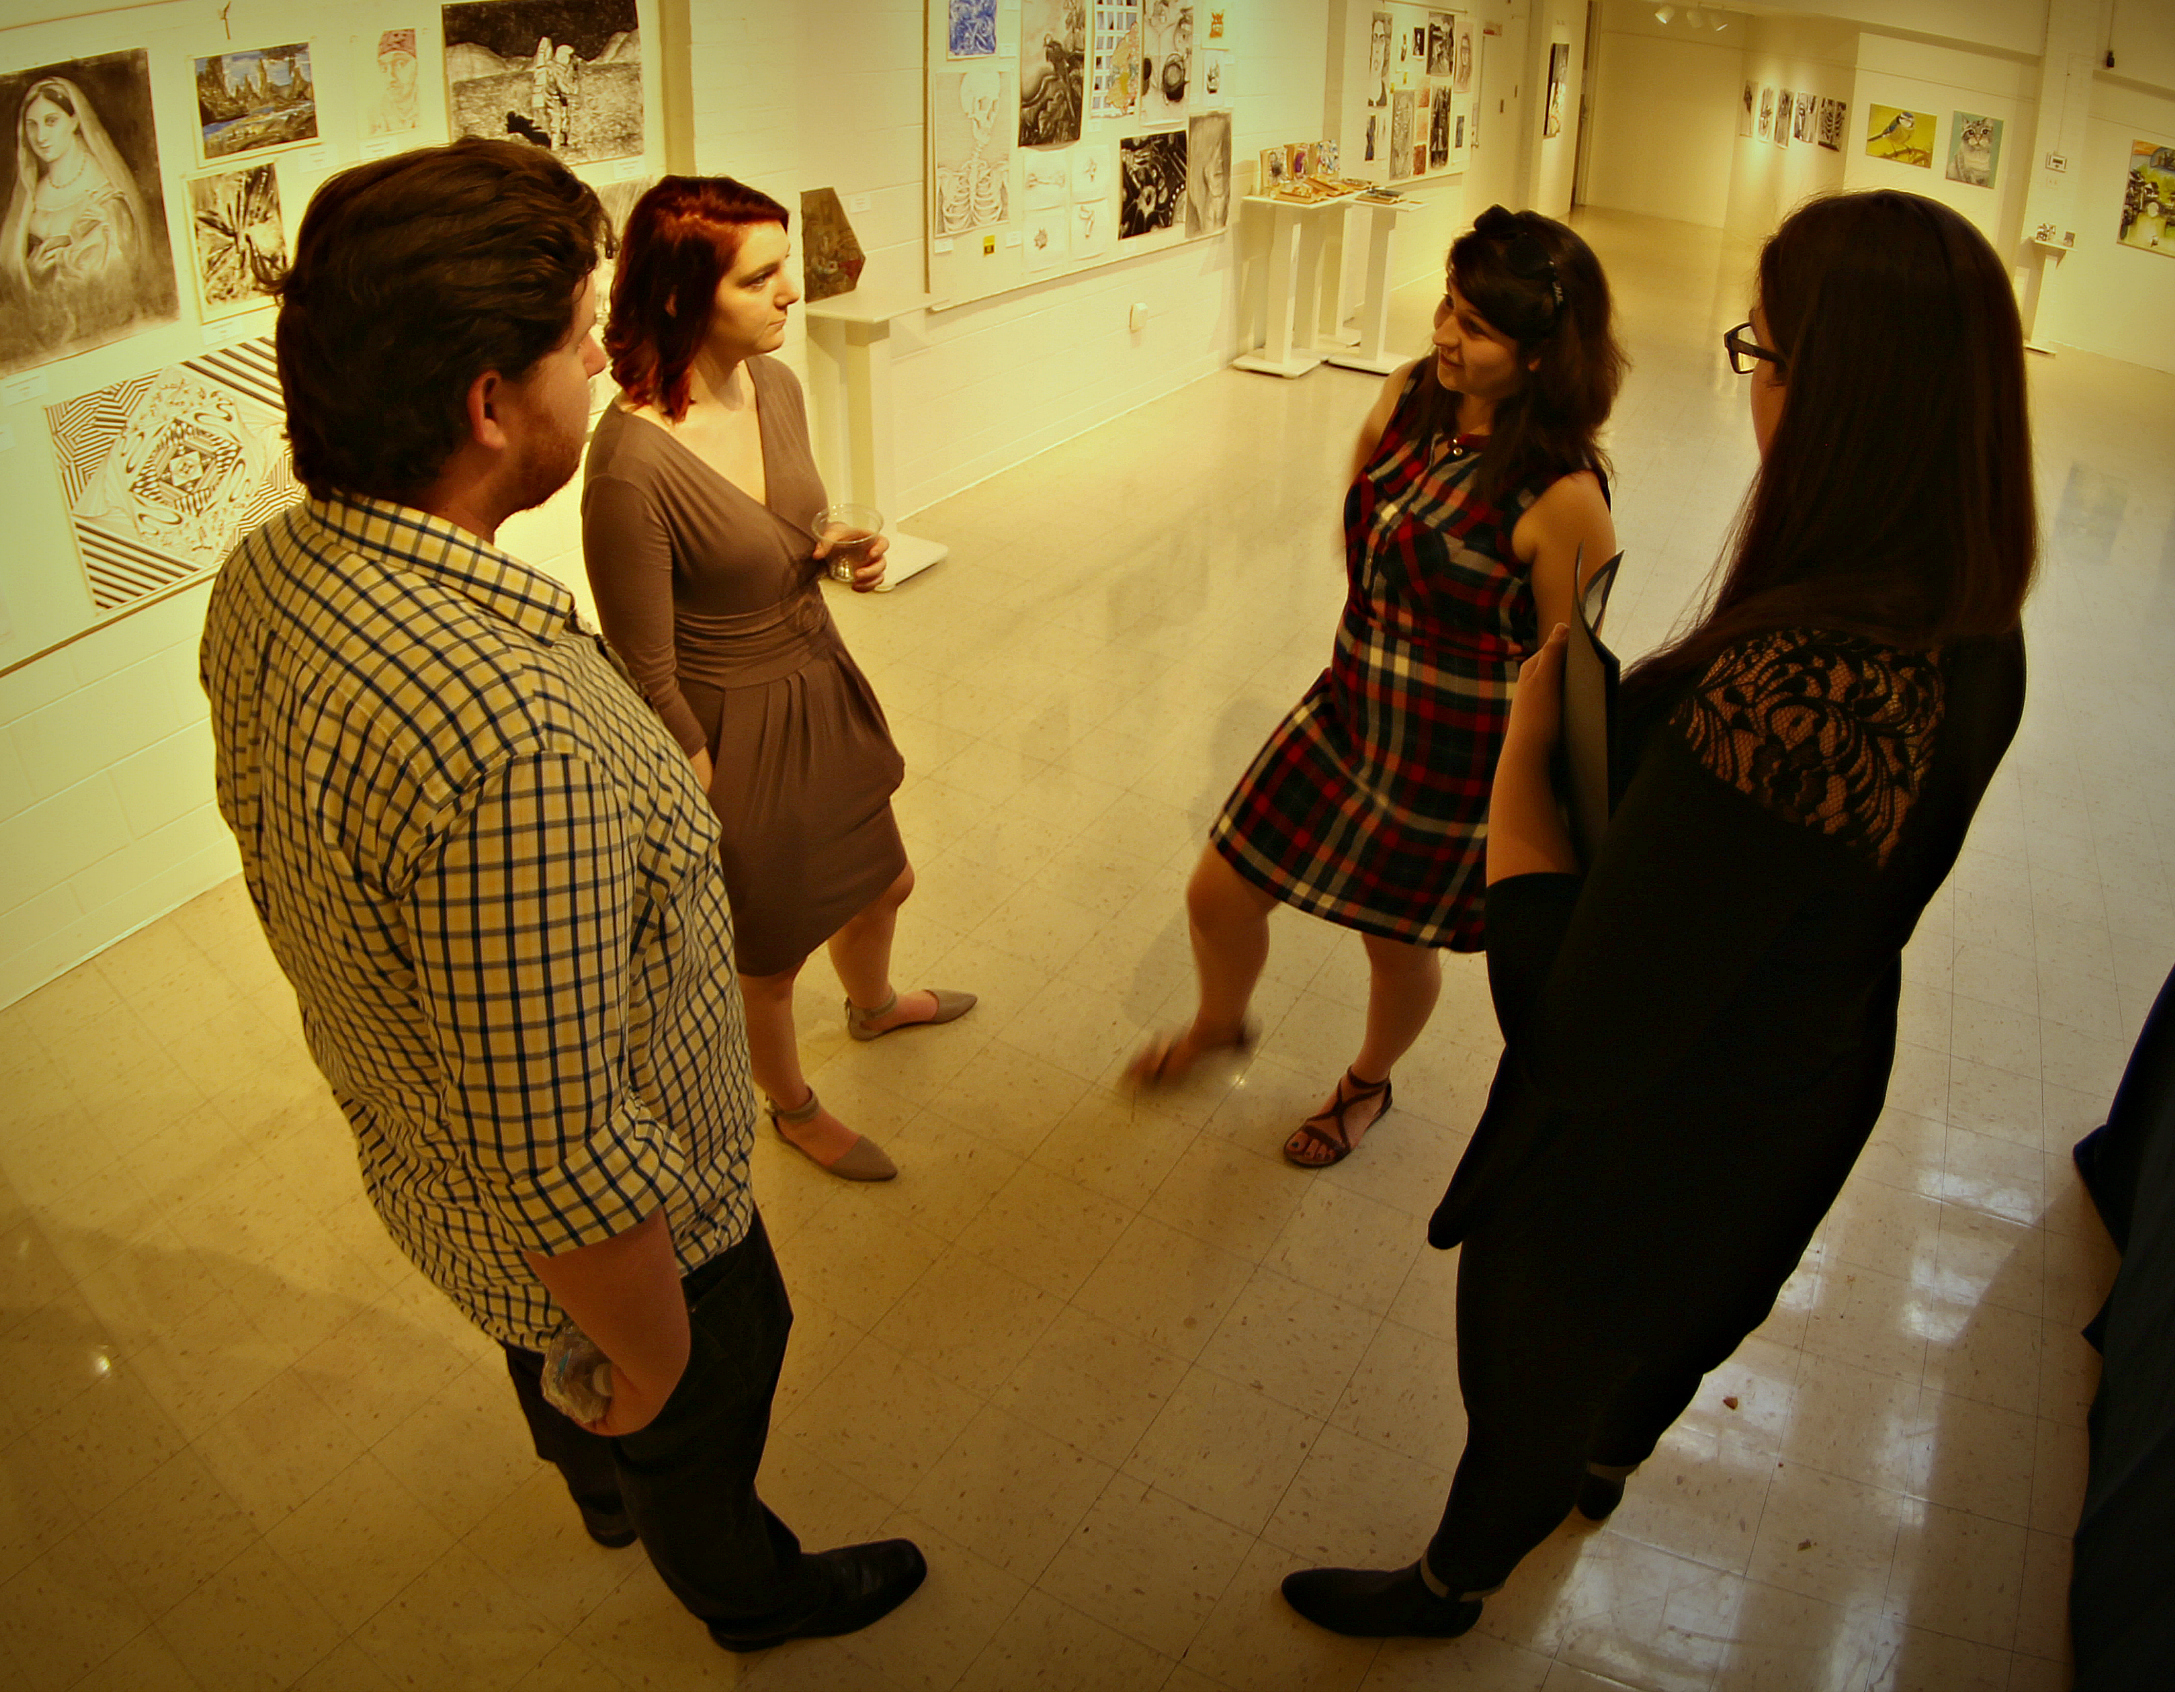 Art and design students converse. Photo by Matt Peters.